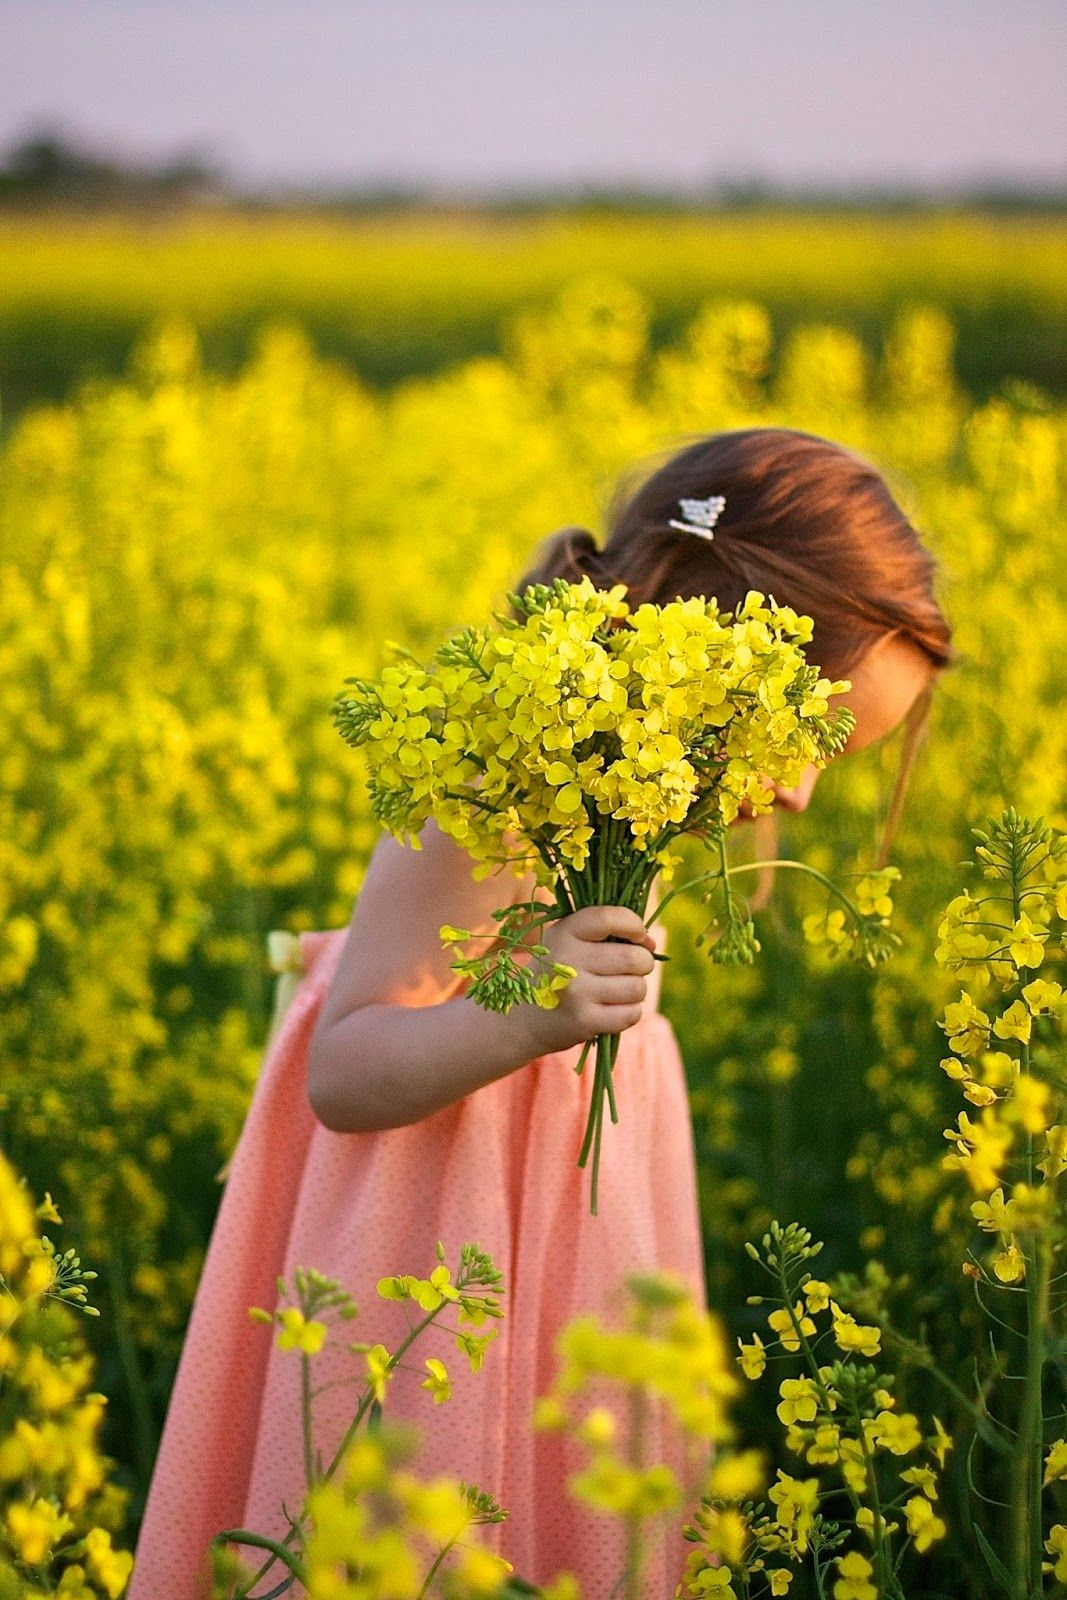 Country living child in fields of flowers country kids country living child in fields of flowers mightylinksfo